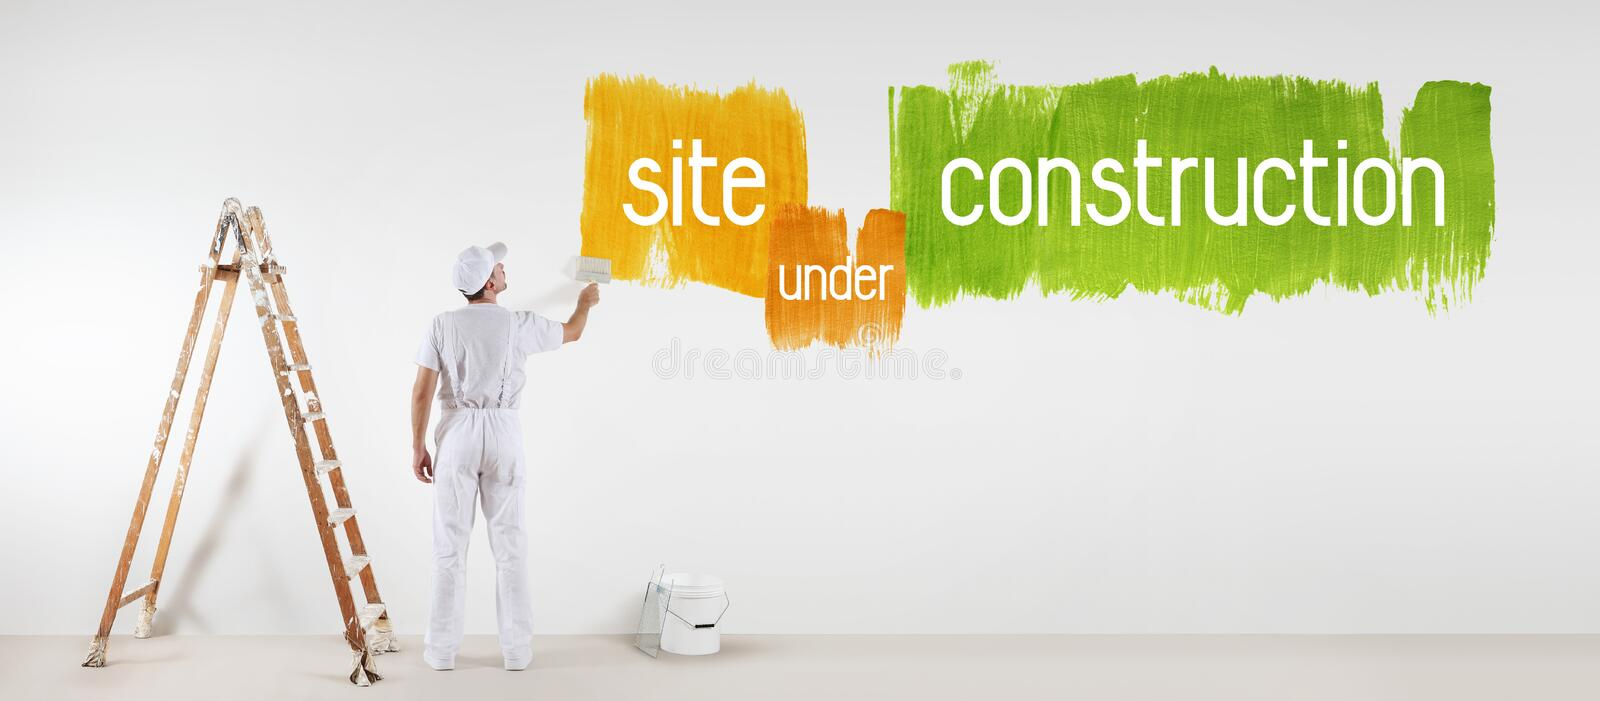 Painter man with paint brush drawing under construction text stock photo